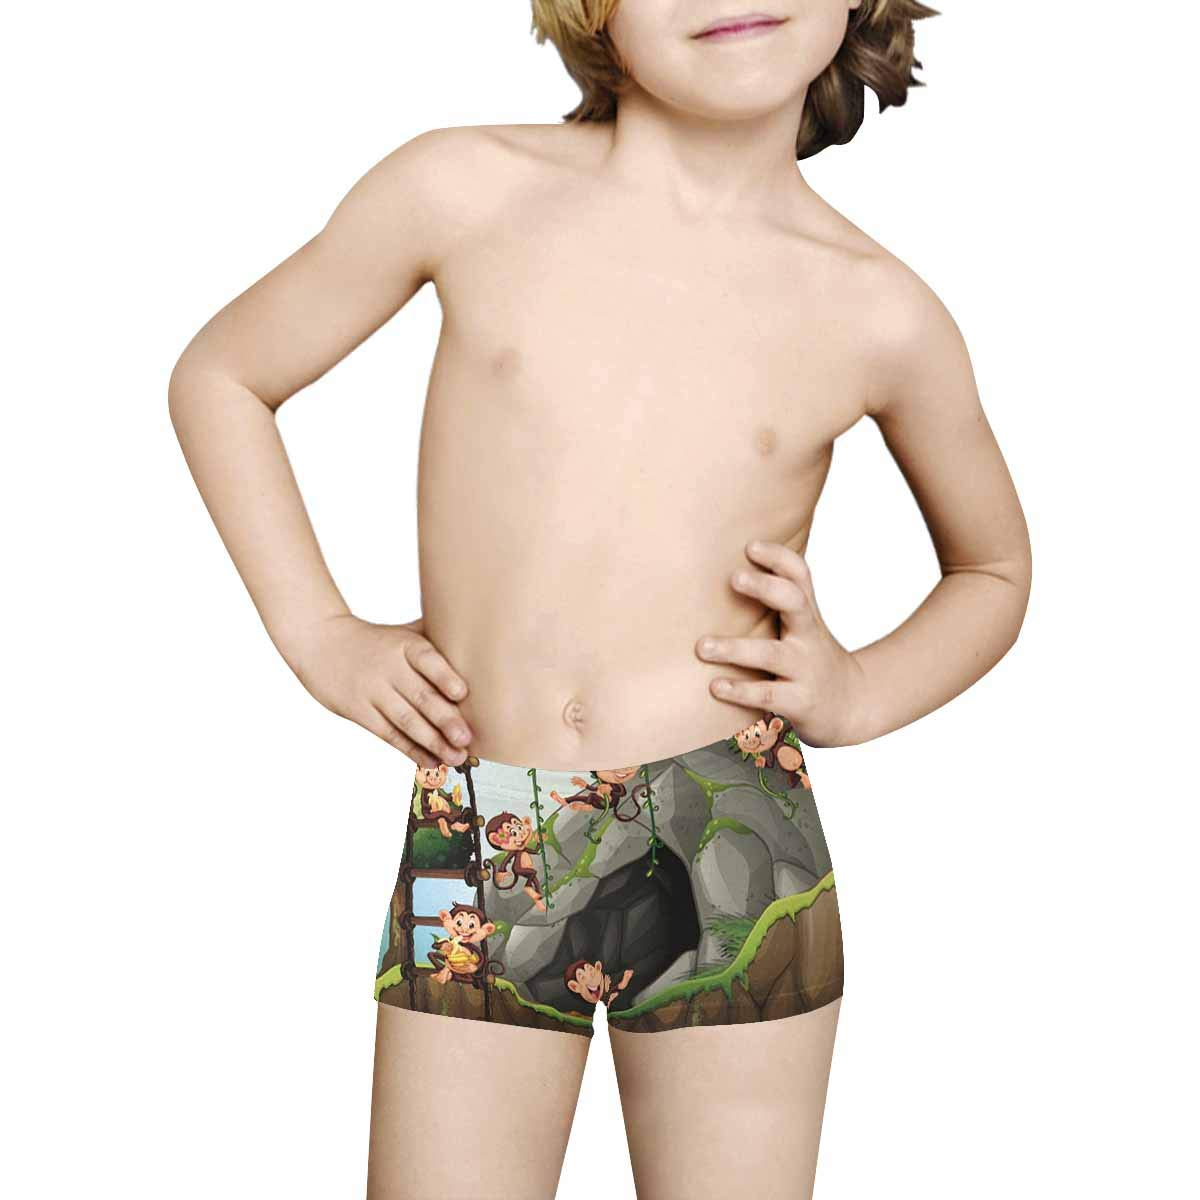 5T-2XL INTERESTPRINT Boys Scene with Monkeys Playing in The Cave ComfortSoft Printed Boxer Briefs